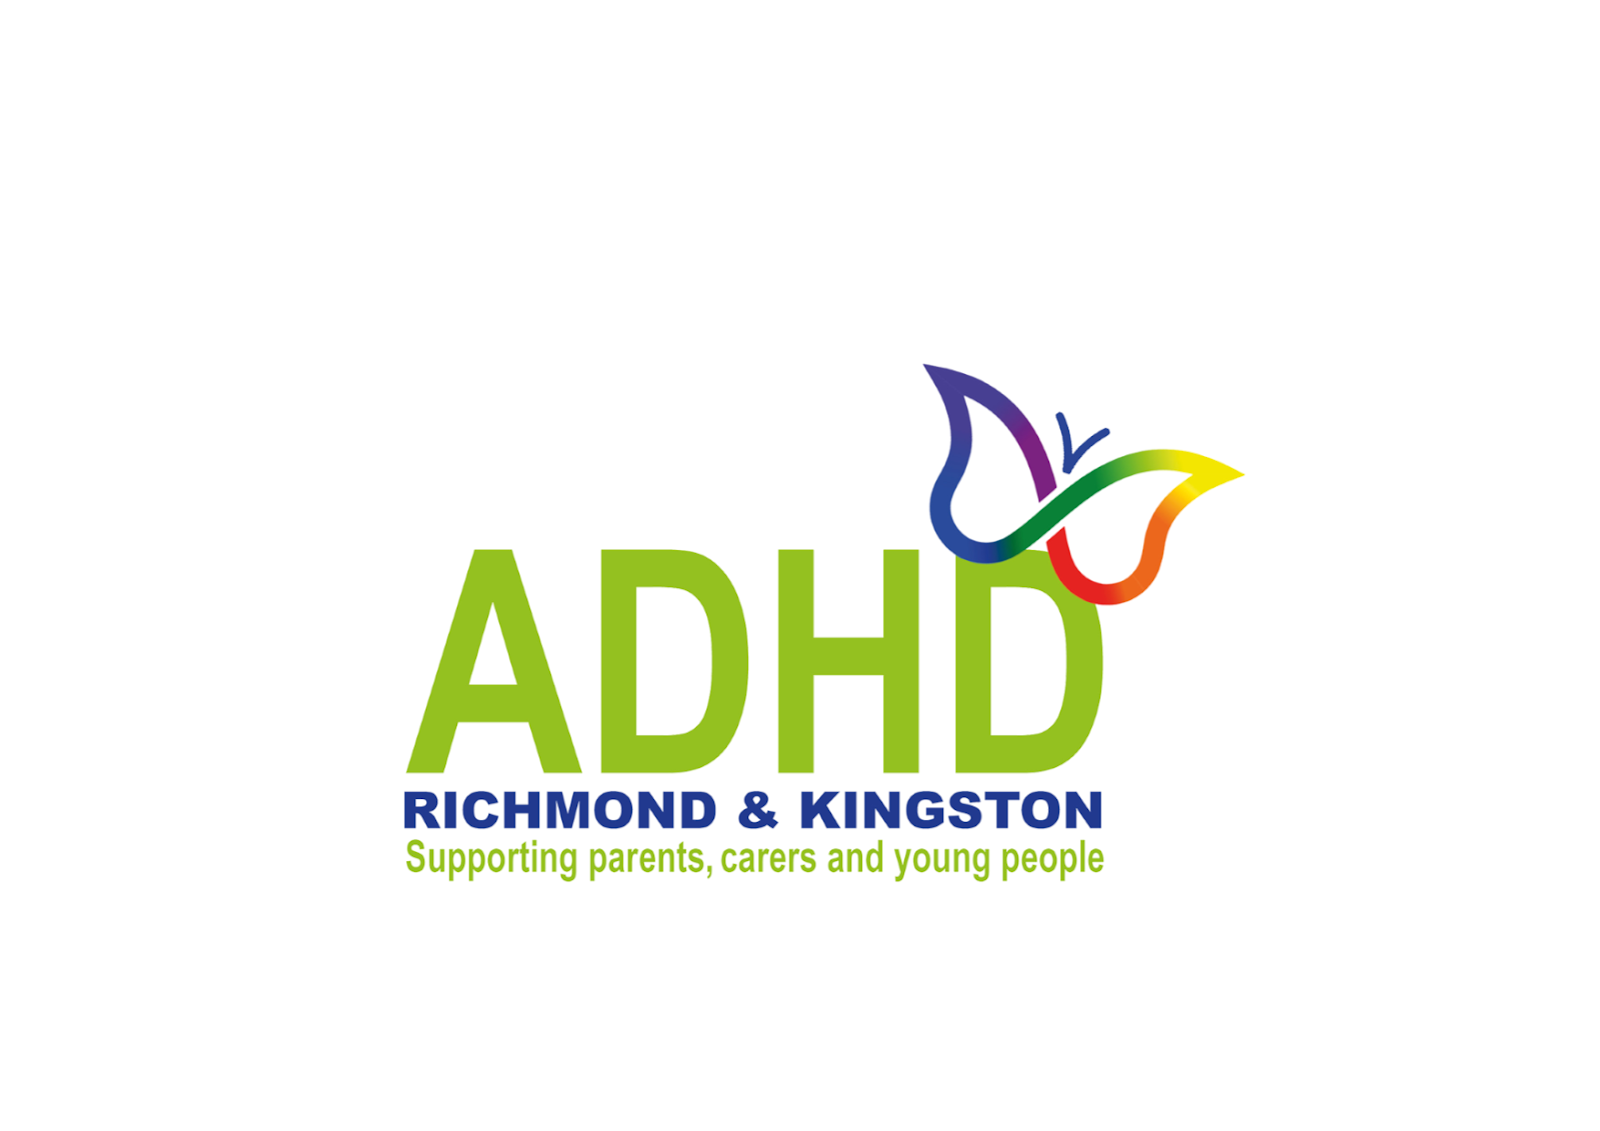 """May be an image of text that says """"ADHD RICHMOND & KINGSTON Supporting parents, carers and young people"""""""